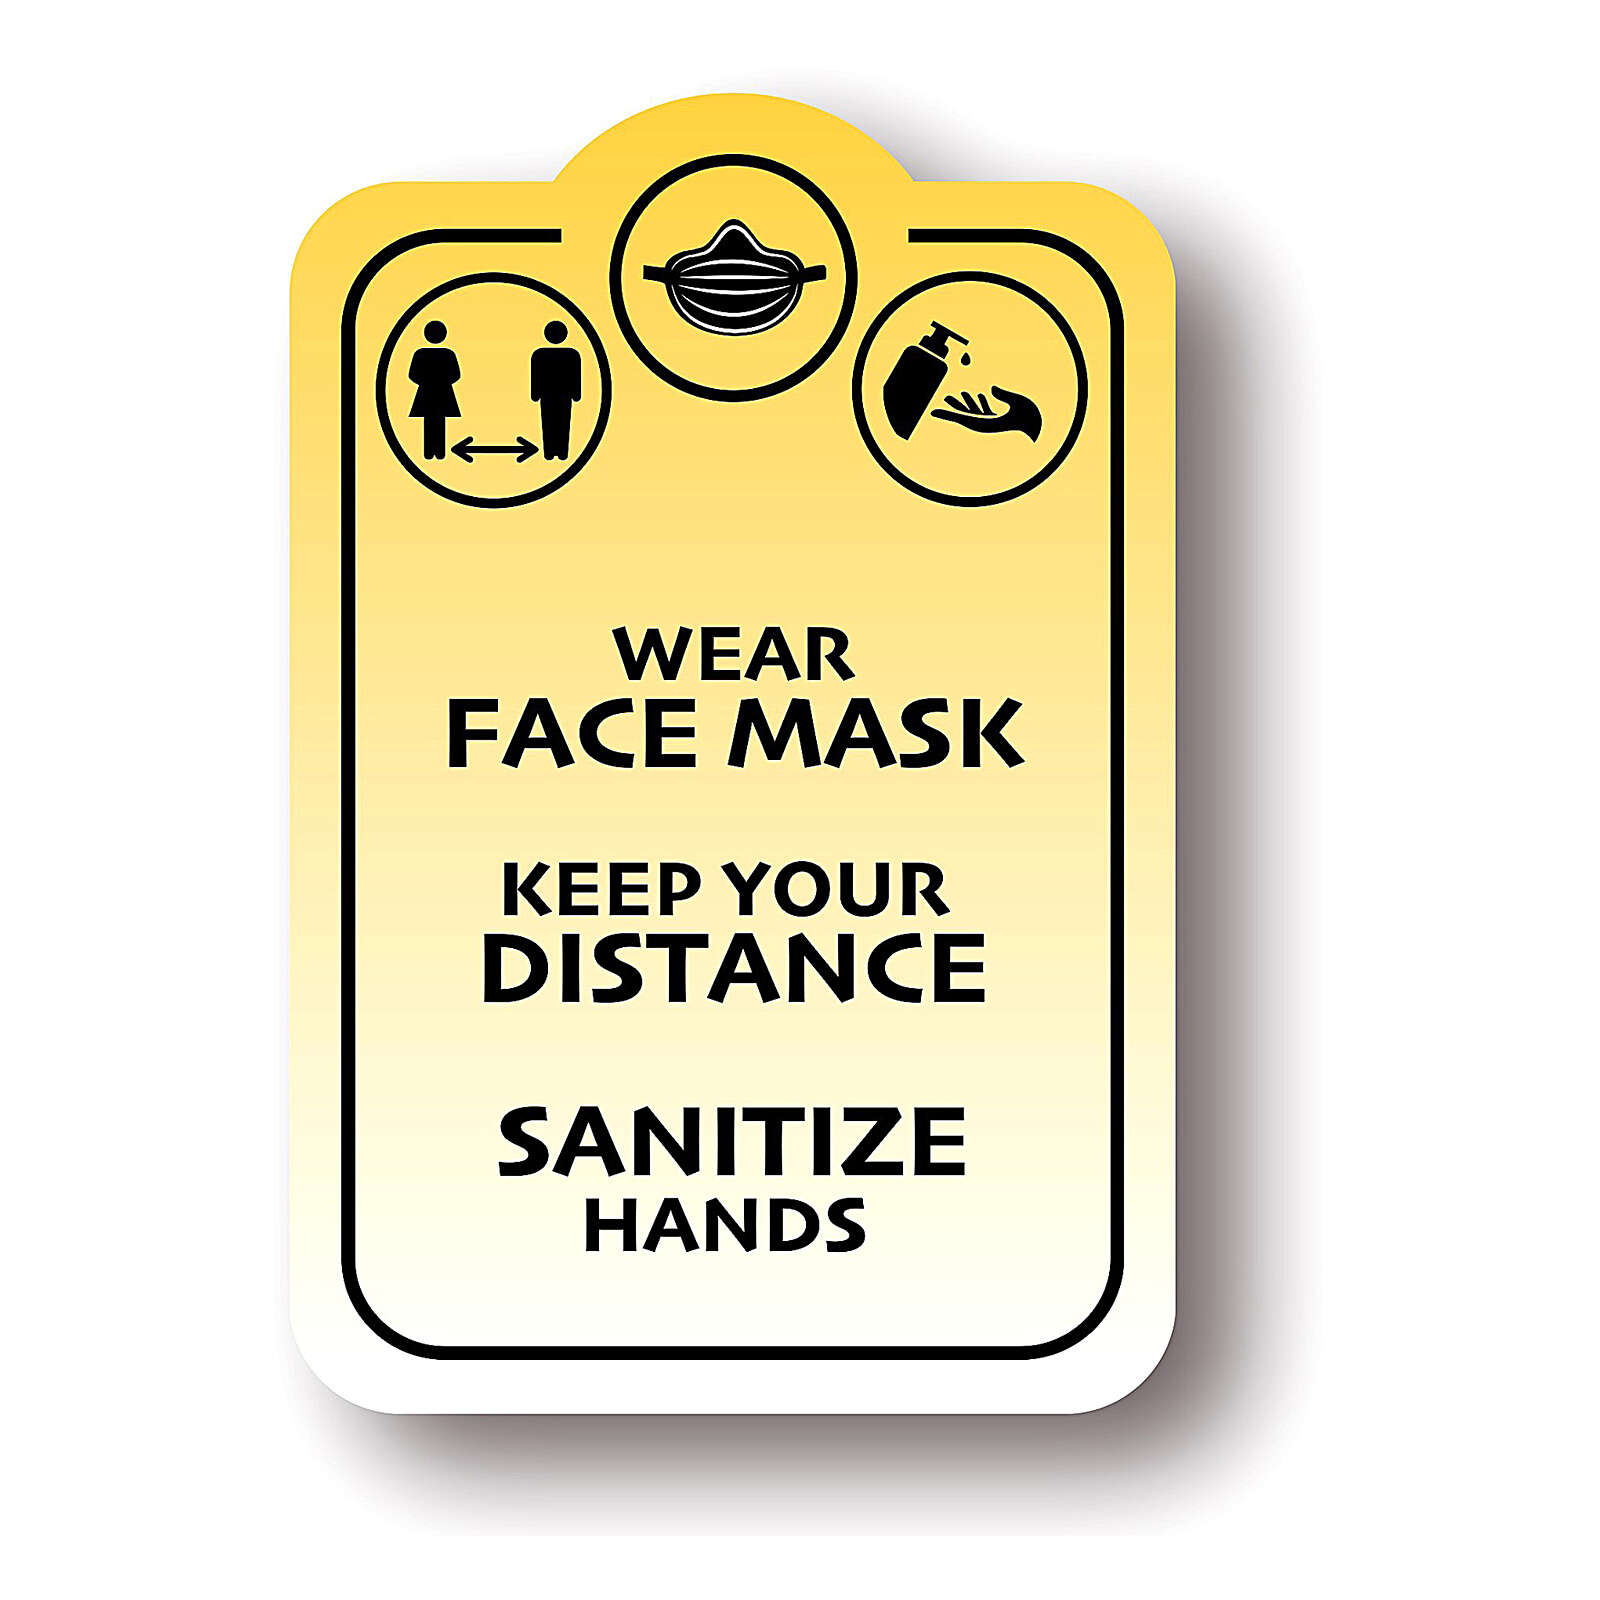 WEAR FACE MASK KEEP YOUR DISTANCE removable stickers 4 pcs 3